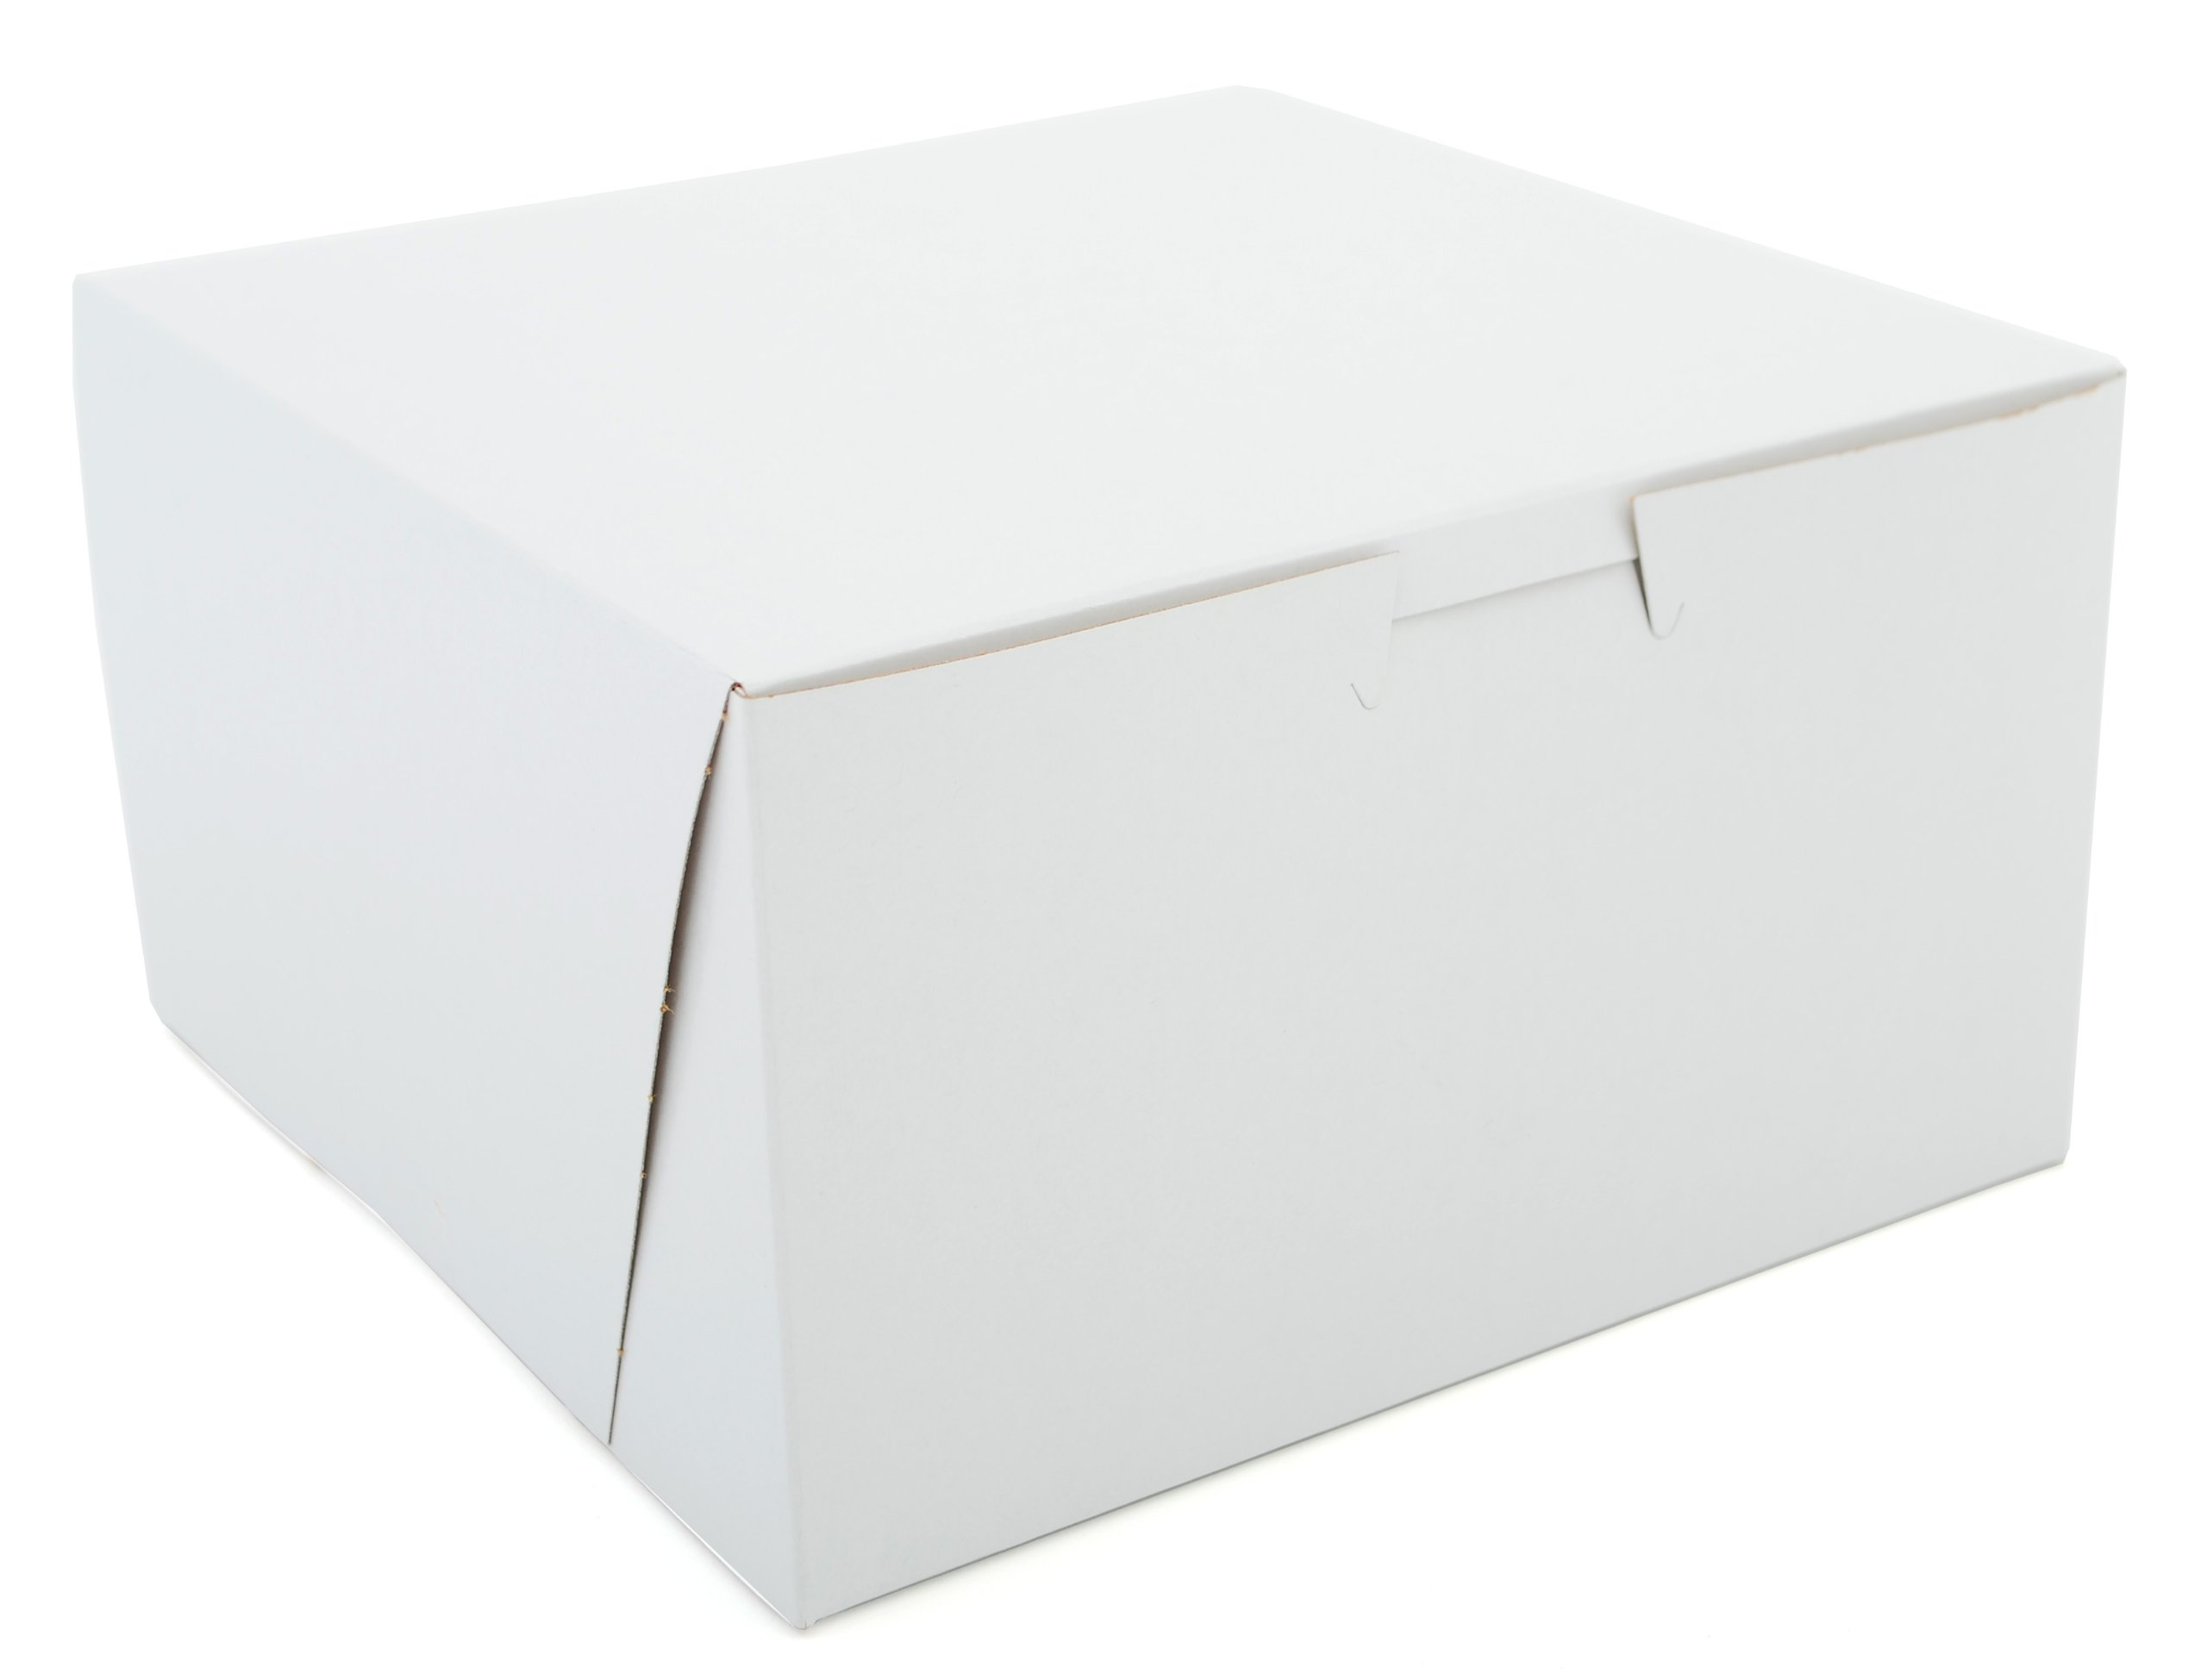 Southern Champion Tray 0921 Premium Clay-Coated Kraft Paperboard White Non-Window Lock Corner Bakery Box, 7'' Length x 7'' Width x 4'' Height (Case of 250)